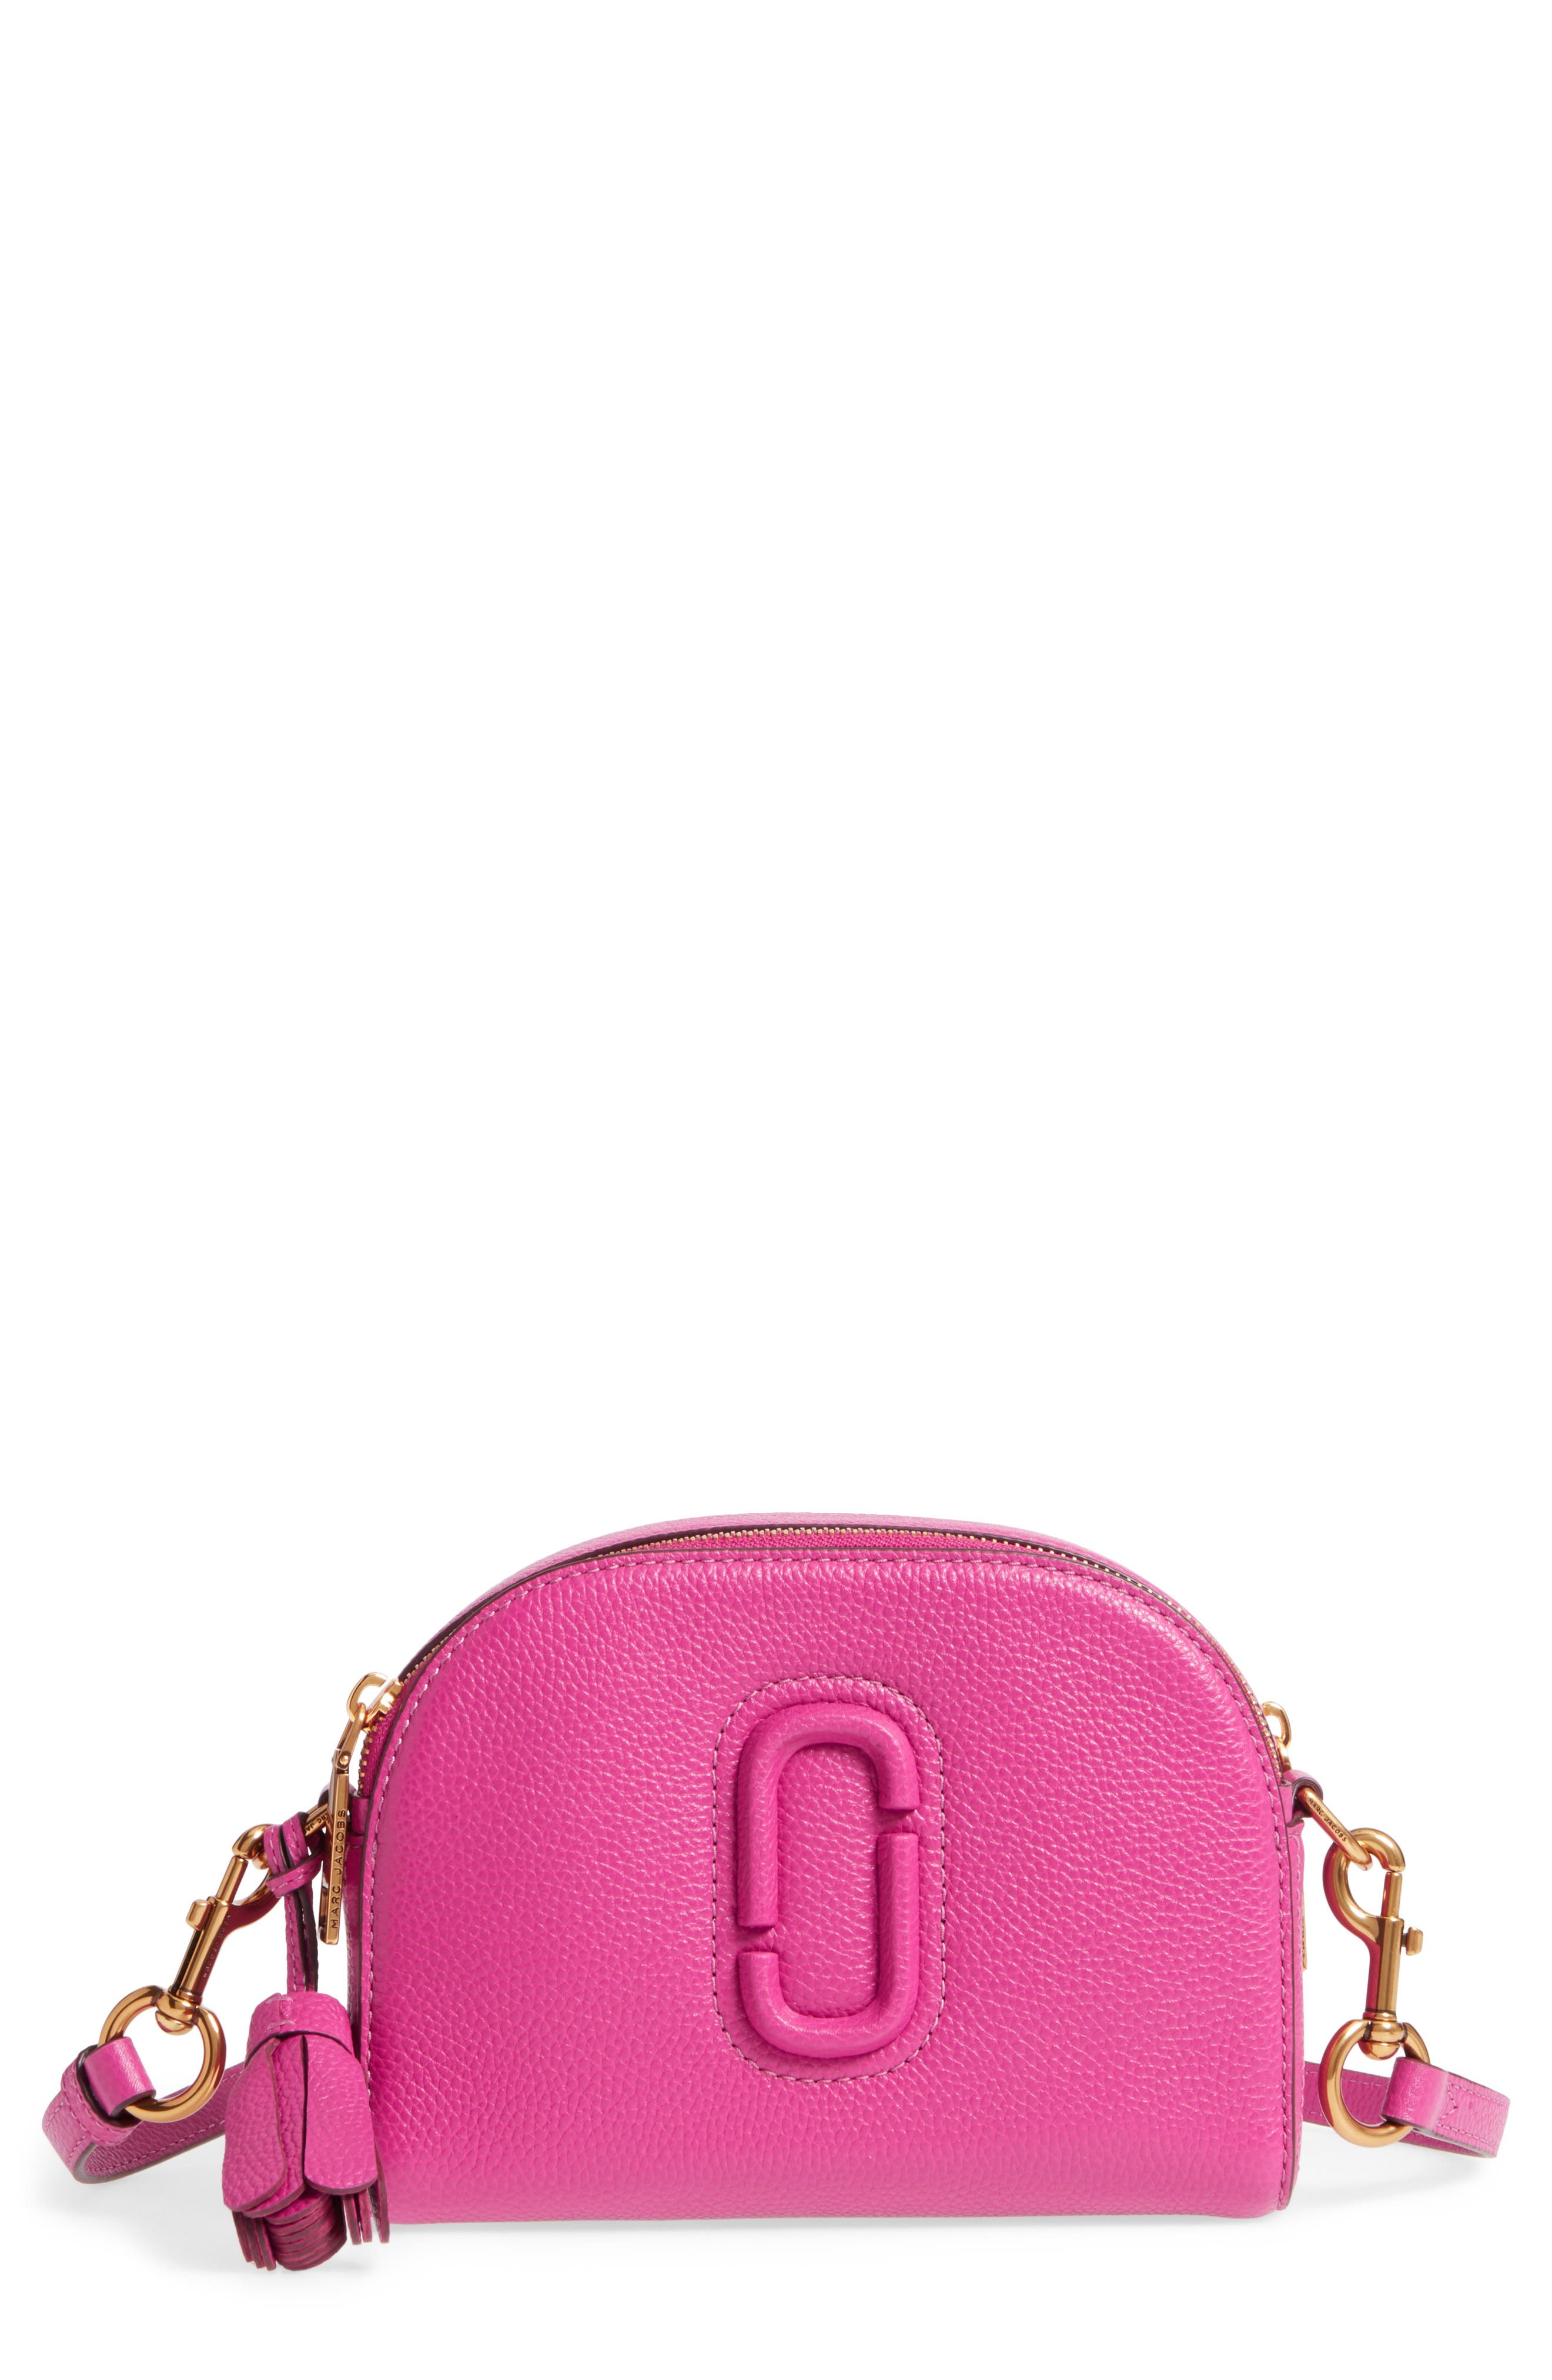 MARC JACOBS Small Shutter Leather Camera Bag